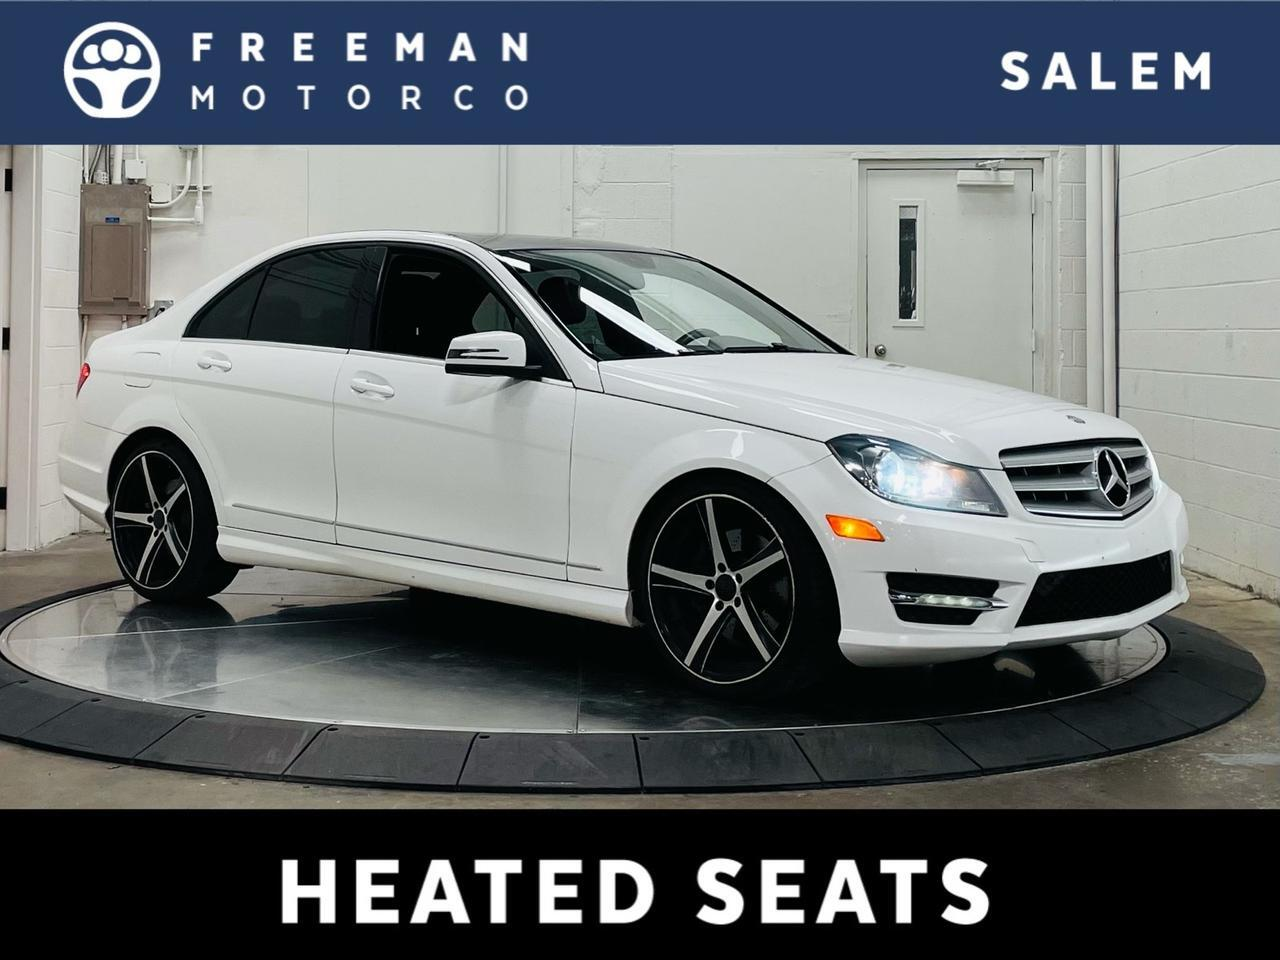 2013 Mercedes-Benz C 300 4MATIC Heated Seats Multimedia Package Salem OR